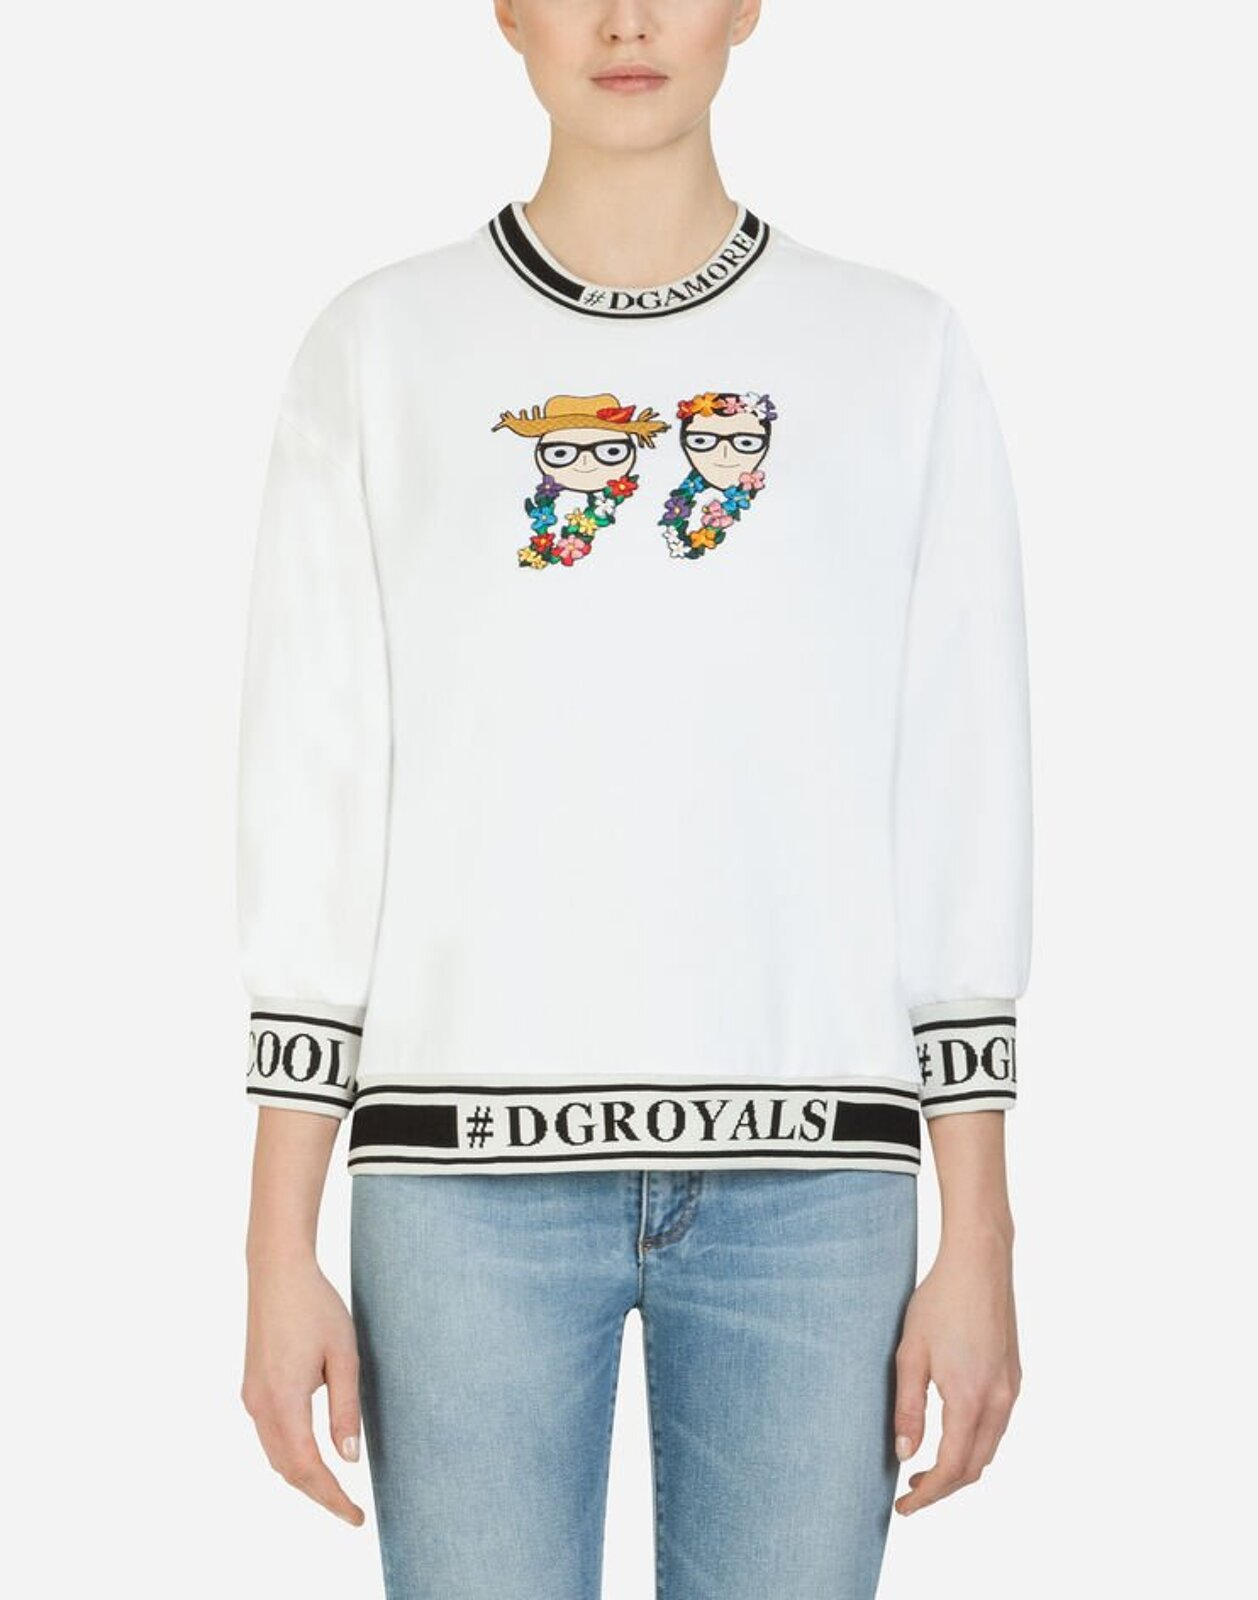 Crewneck Sweatshirt With Stylists Patches - Dolce & Gabbana